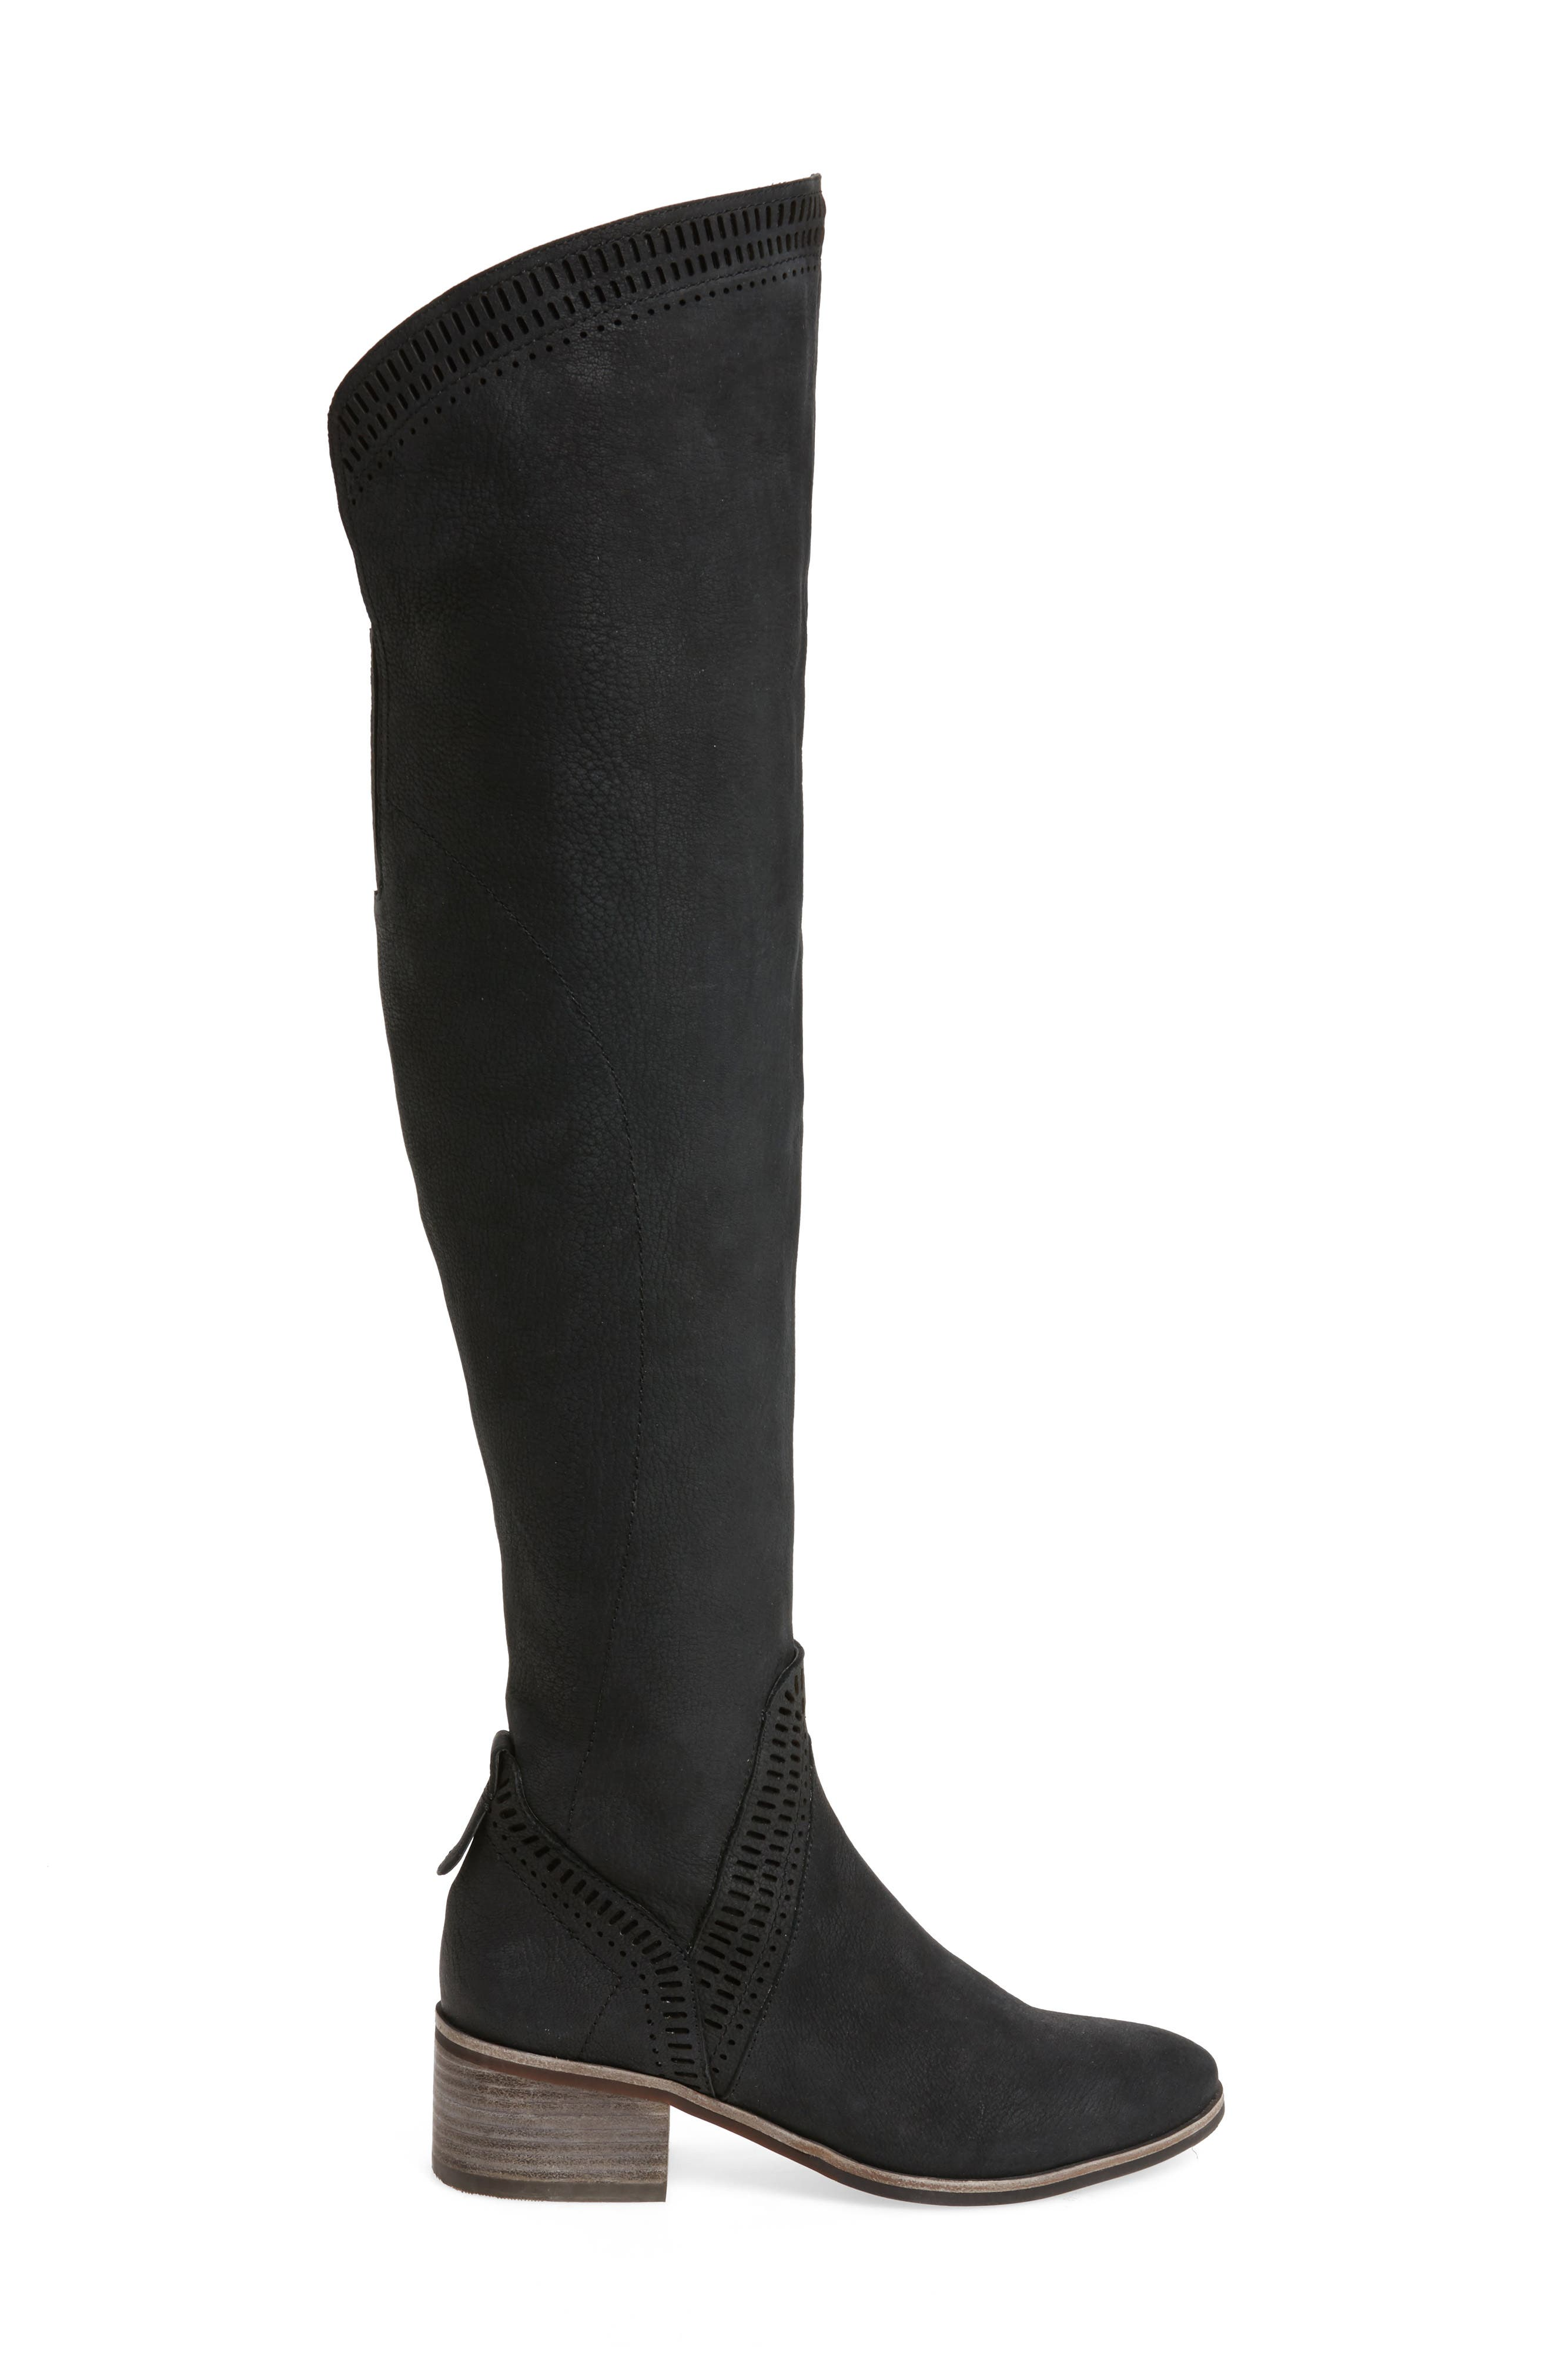 Karinda Over the Knee Boot,                             Alternate thumbnail 3, color,                             Black Leather Wide Calf